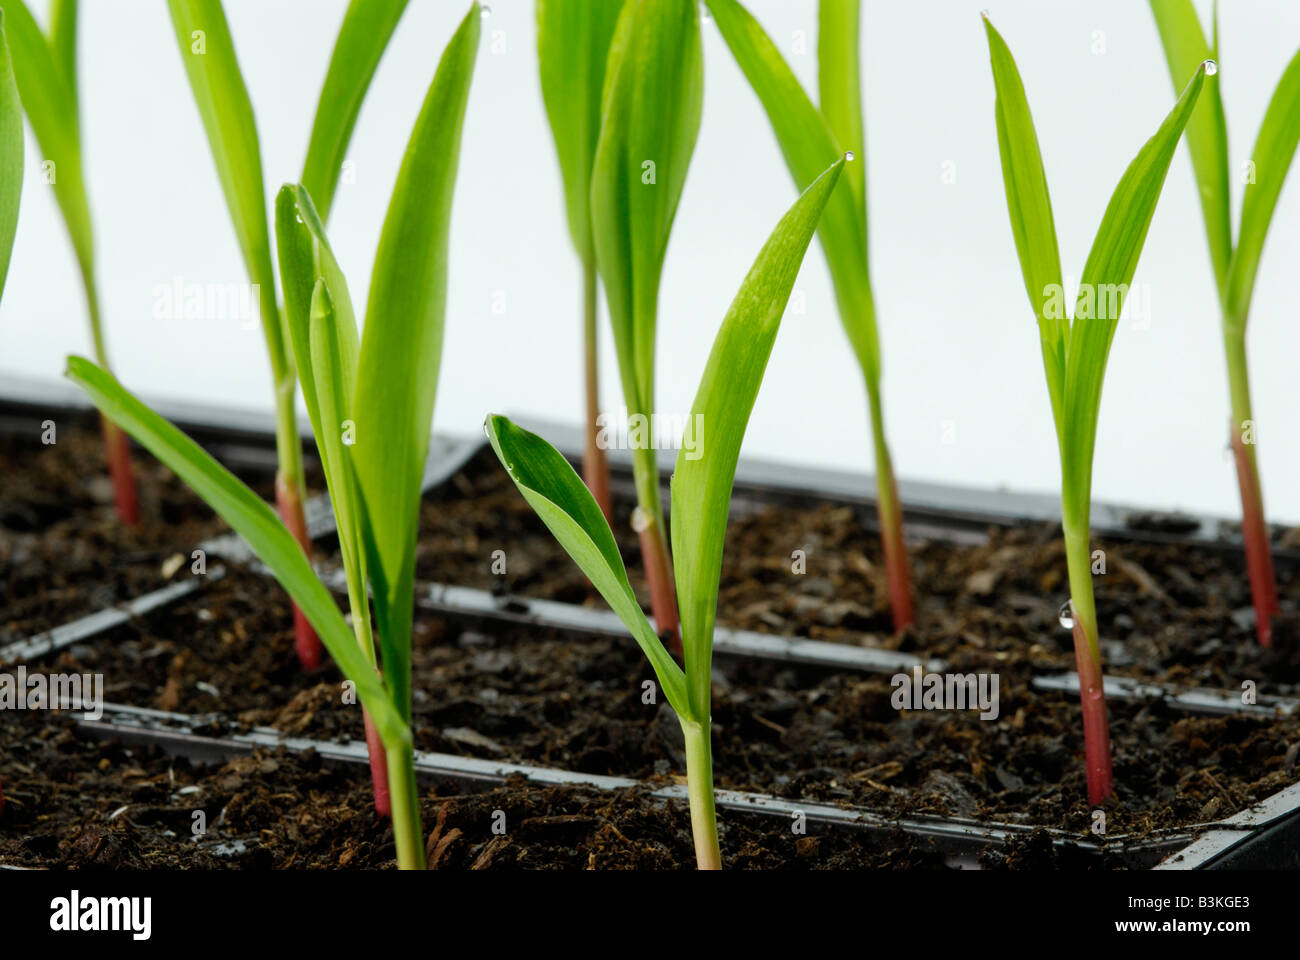 Corn Zea mays seedlings in flats The plants are 1 2 weeks old - Stock Image